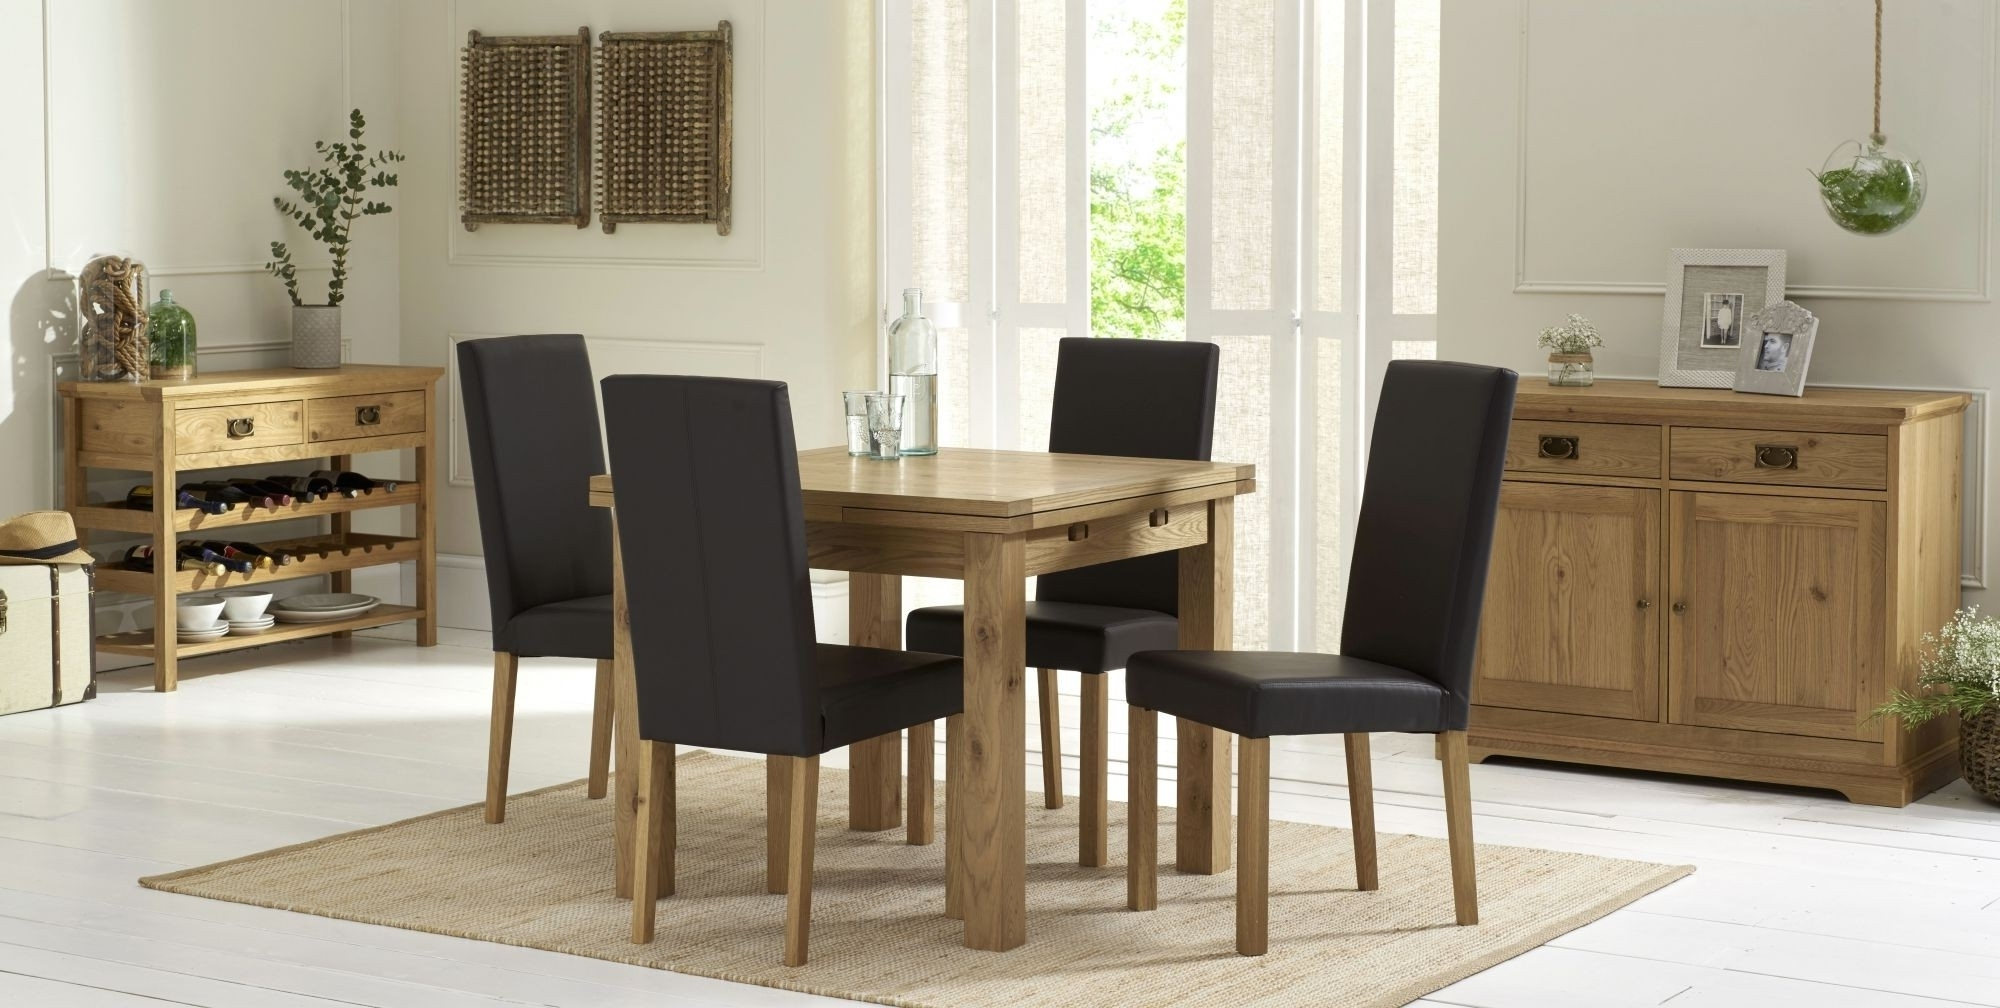 Well Liked Provence Oak 2 4 Seater Extending Dining Table – Style Our Home In 4 Seater Extendable Dining Tables (View 24 of 25)